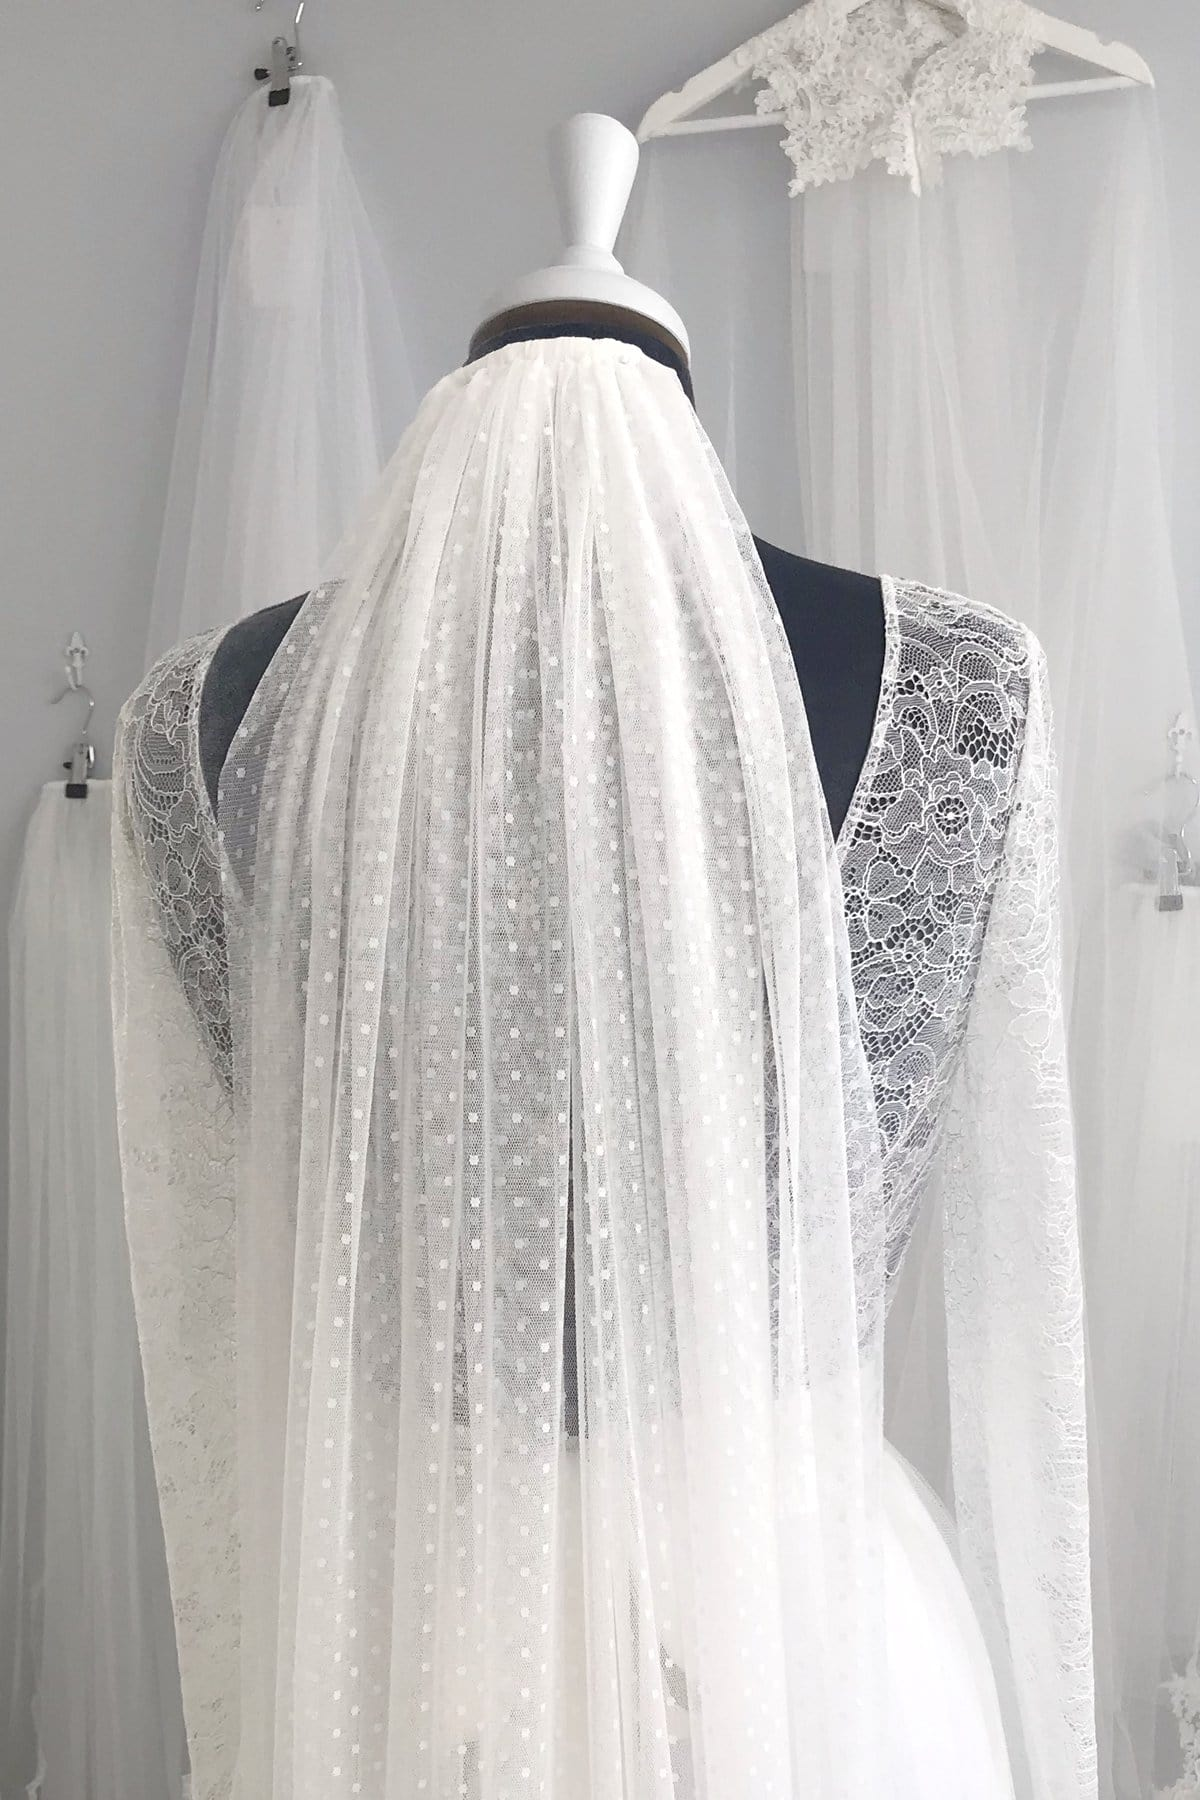 Wedding Veil Polka dot silk style tulle wedding veil - 'Dot'